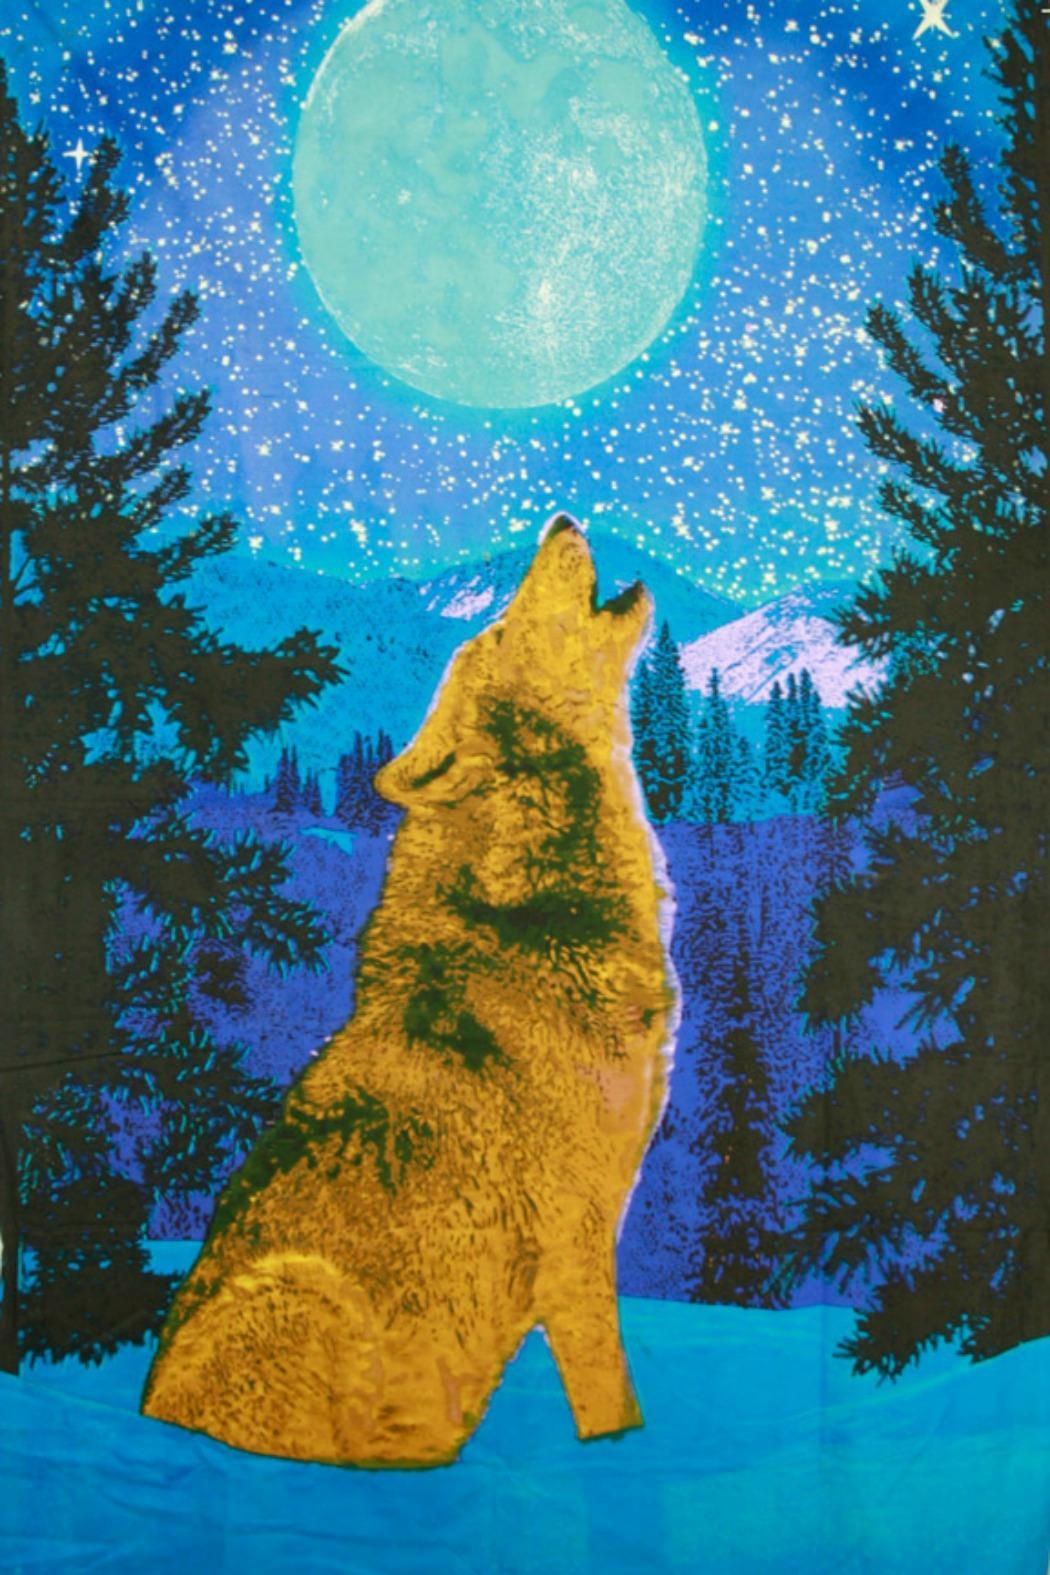 Sunshine Joy Glow In The Dark 3d Wolf Tapestry - Main Image